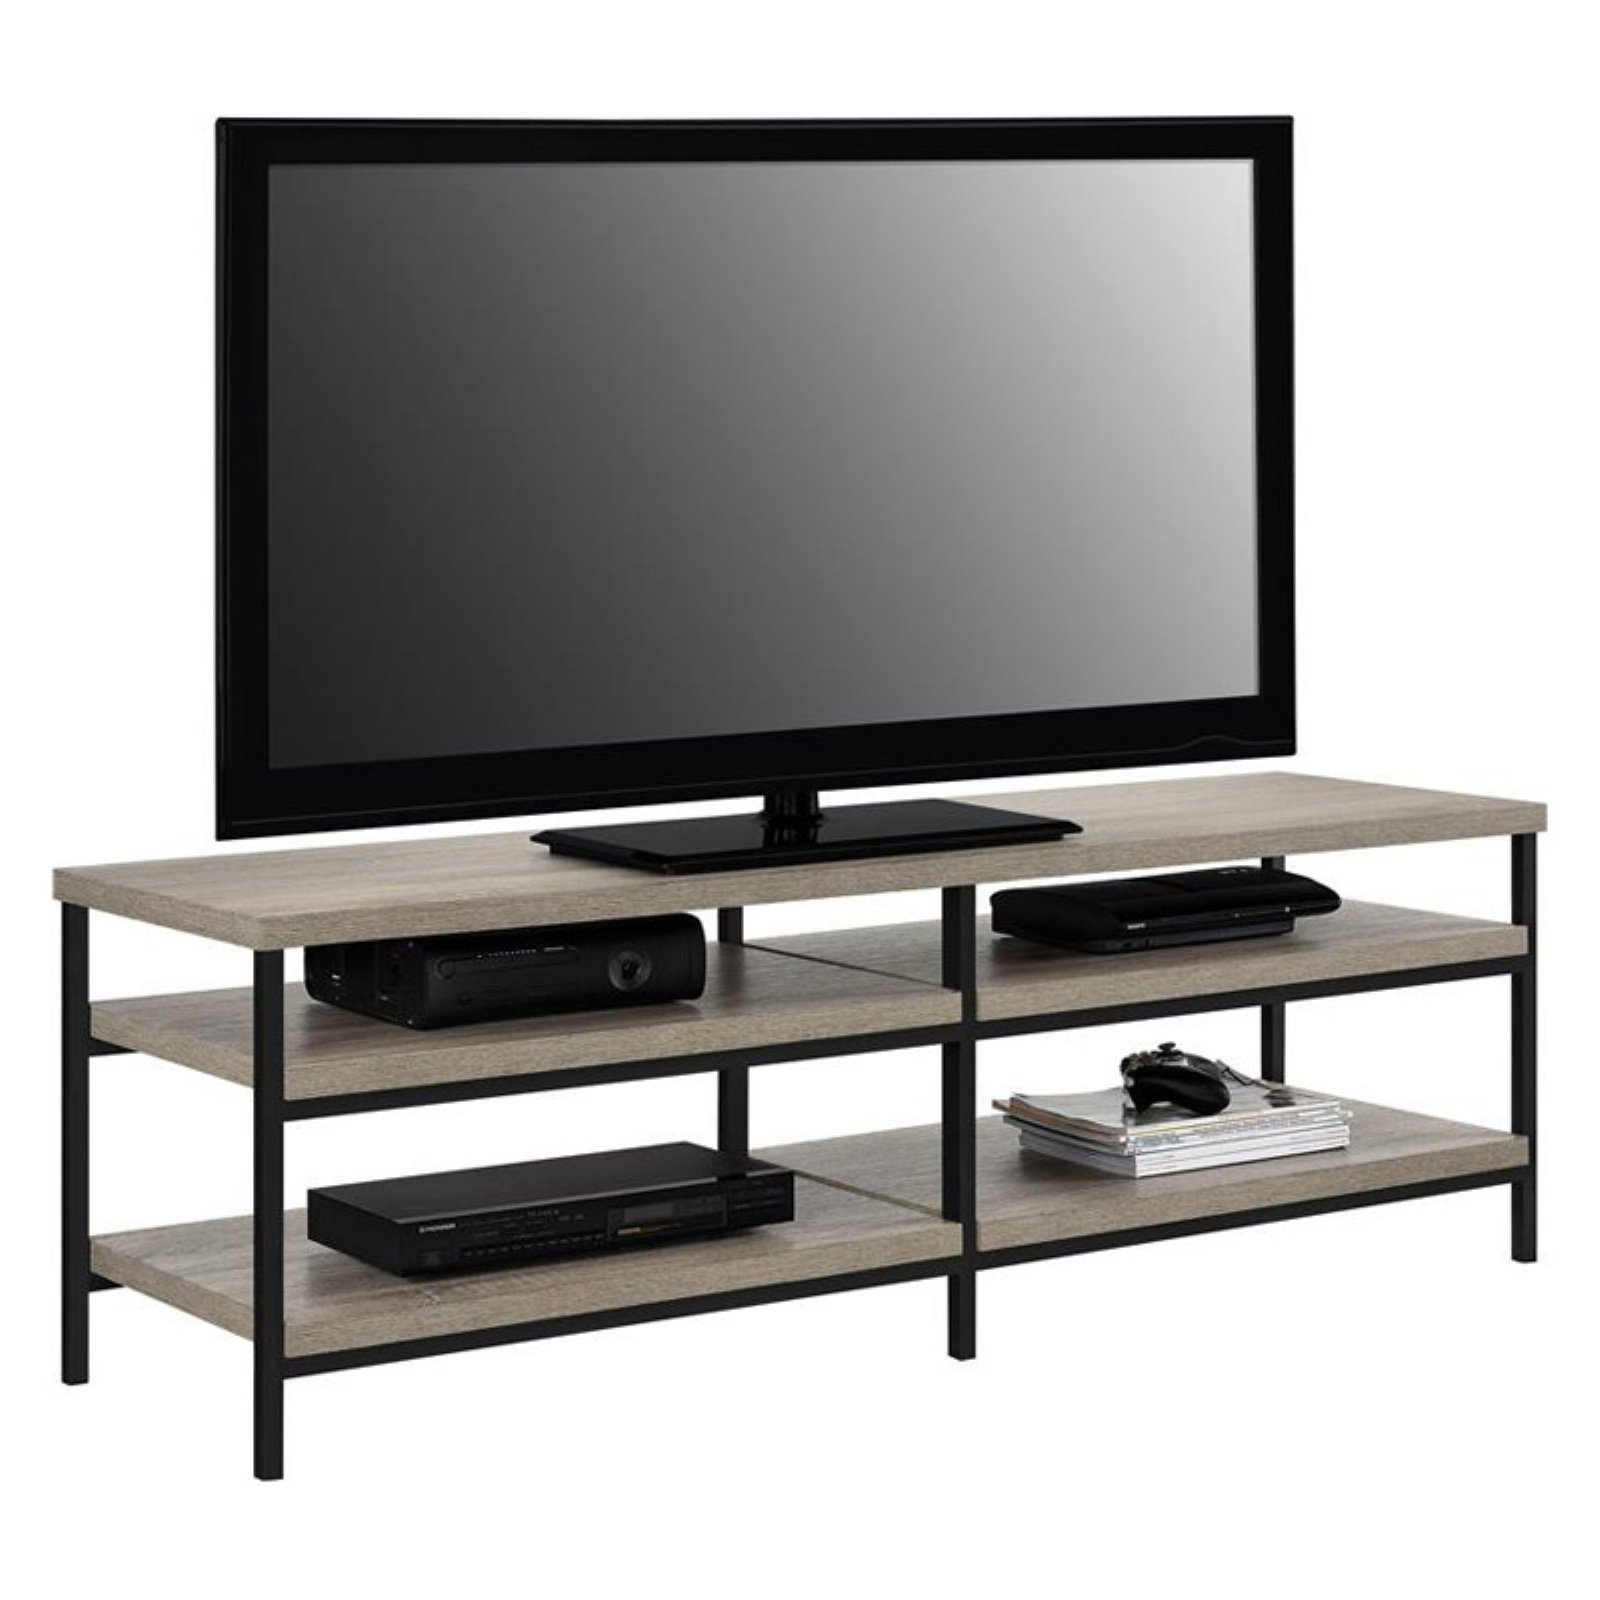 "Elmwood TV Stand for TVs up to 60"", Sonoma Oak"